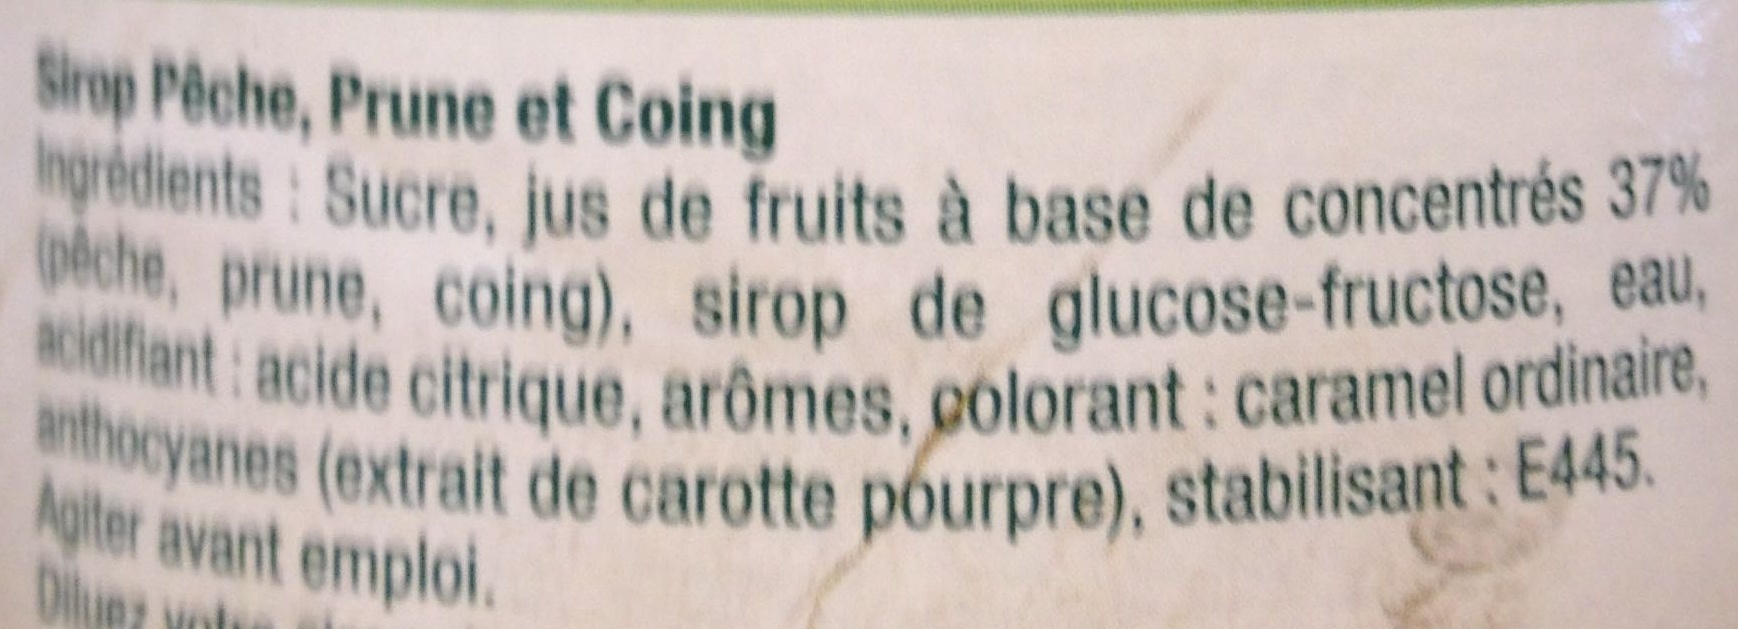 Sirop Pêche Prune Coing - Ingrédients